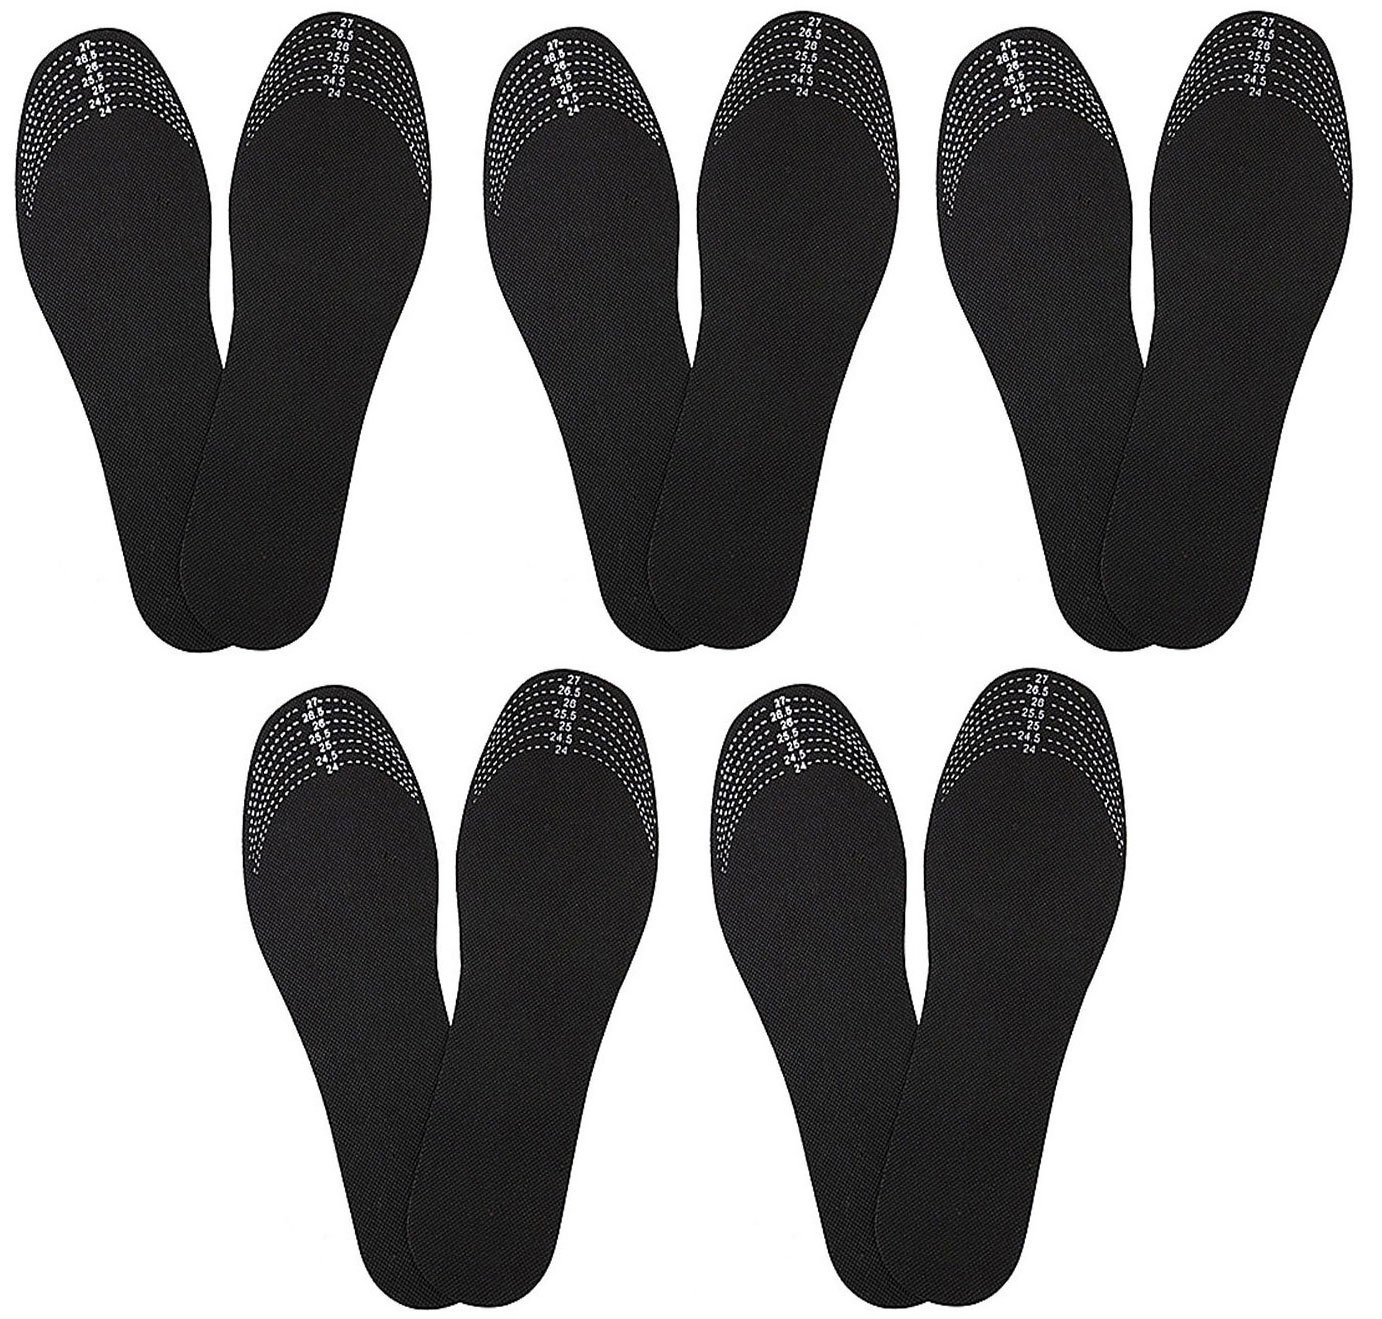 Pack of 5 Pairs Which Is 10 Insoles to Kill Off the Cause of Odor From Smelly Feet and Shoes Naturally with Activated Charcoal Wetness Drying and Odor Absorbing Shoe Insoles for Women's 7-12 and Mens 5.5-10.5 USA and Canada Shoe Sizes 10pcs lot 12v dc converter dc step down module 12v to 5v voltage converter power supply board lcd repair tool